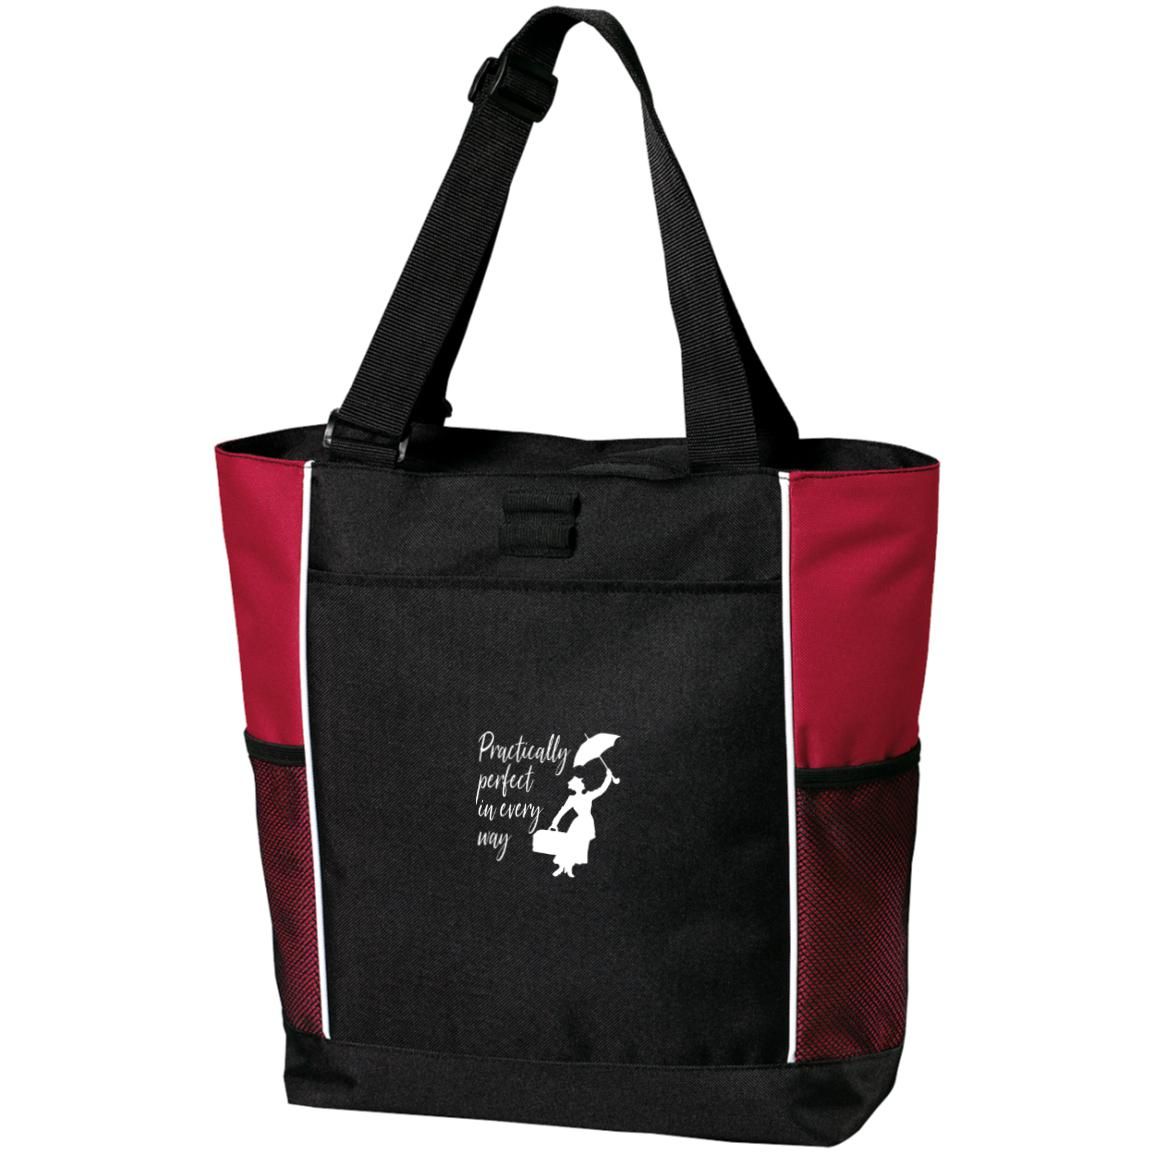 Mary Poppins Practically Perfect - Port Authority Colorblock Zipper Tote Bag